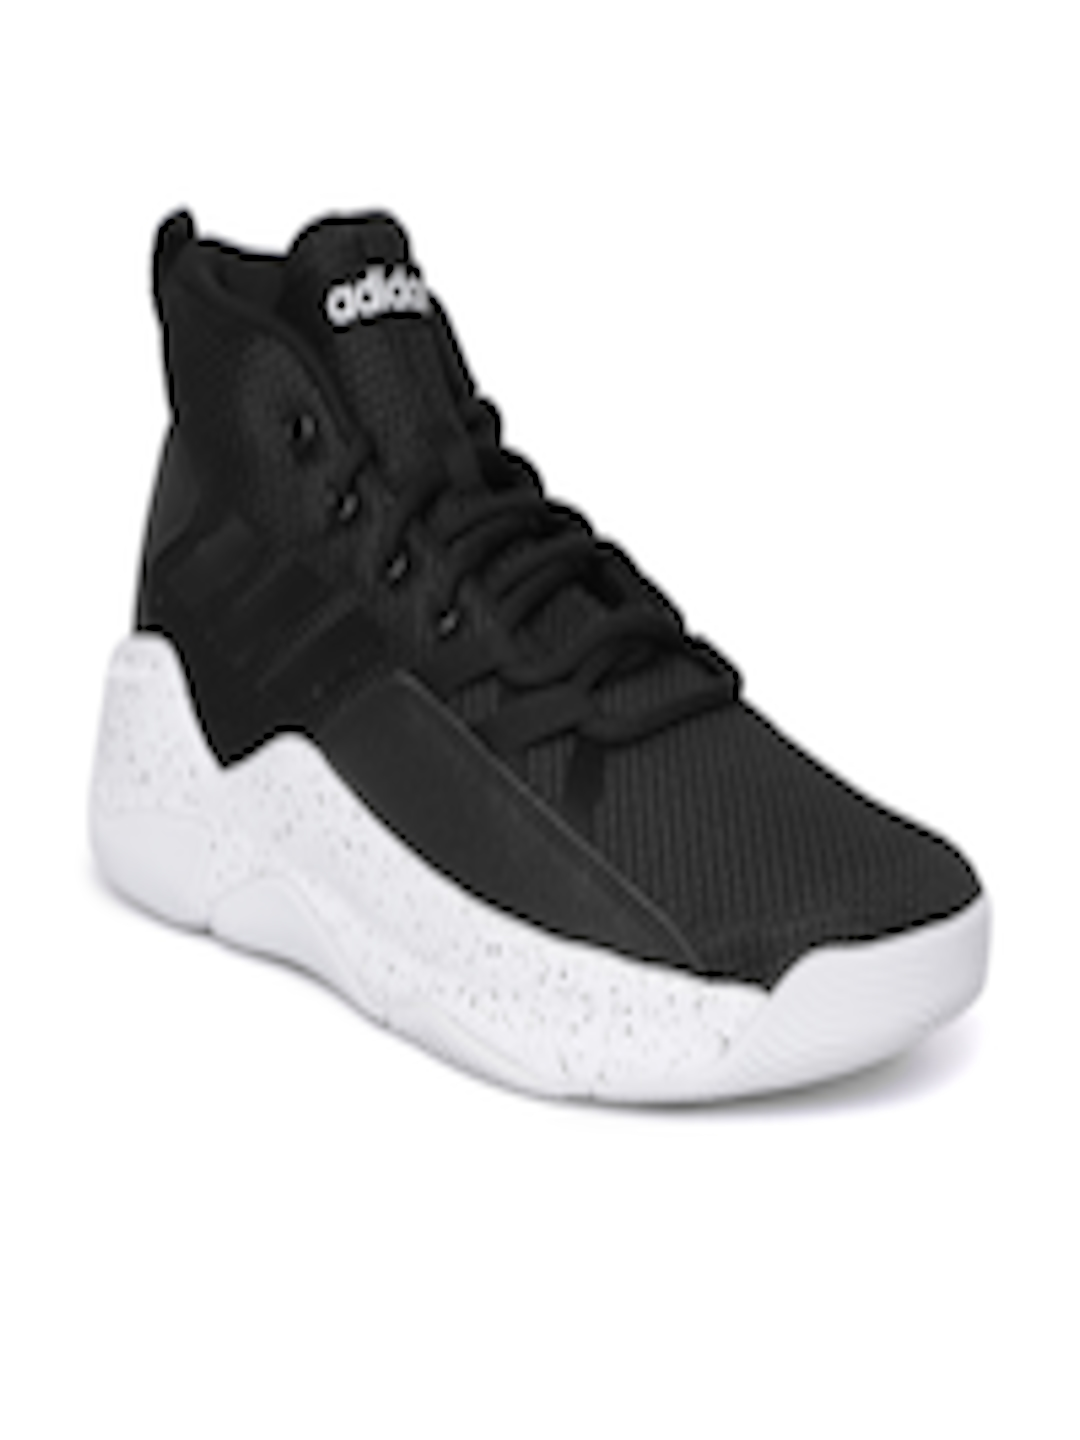 45d4e4d18a91 Buy ADIDAS Men Black Streetfire Basketball Shoes - Sports Shoes for Men  6841908